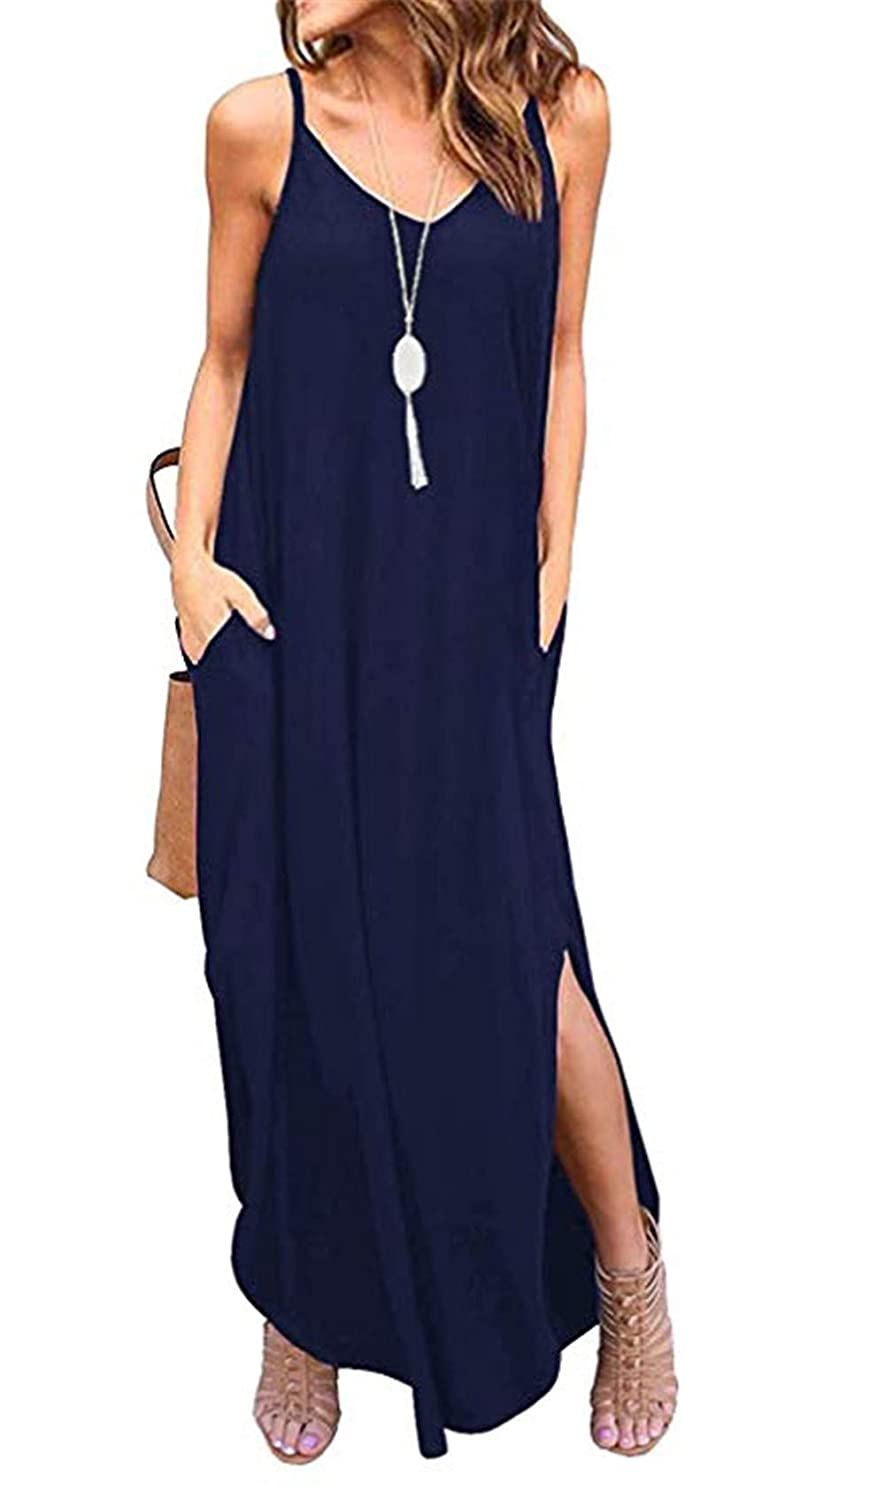 Navy bluee LAMISSCHE Womens Summer Casual Loose Dress Beach Cover Up Long Cami Maxi Dresses with Pocket